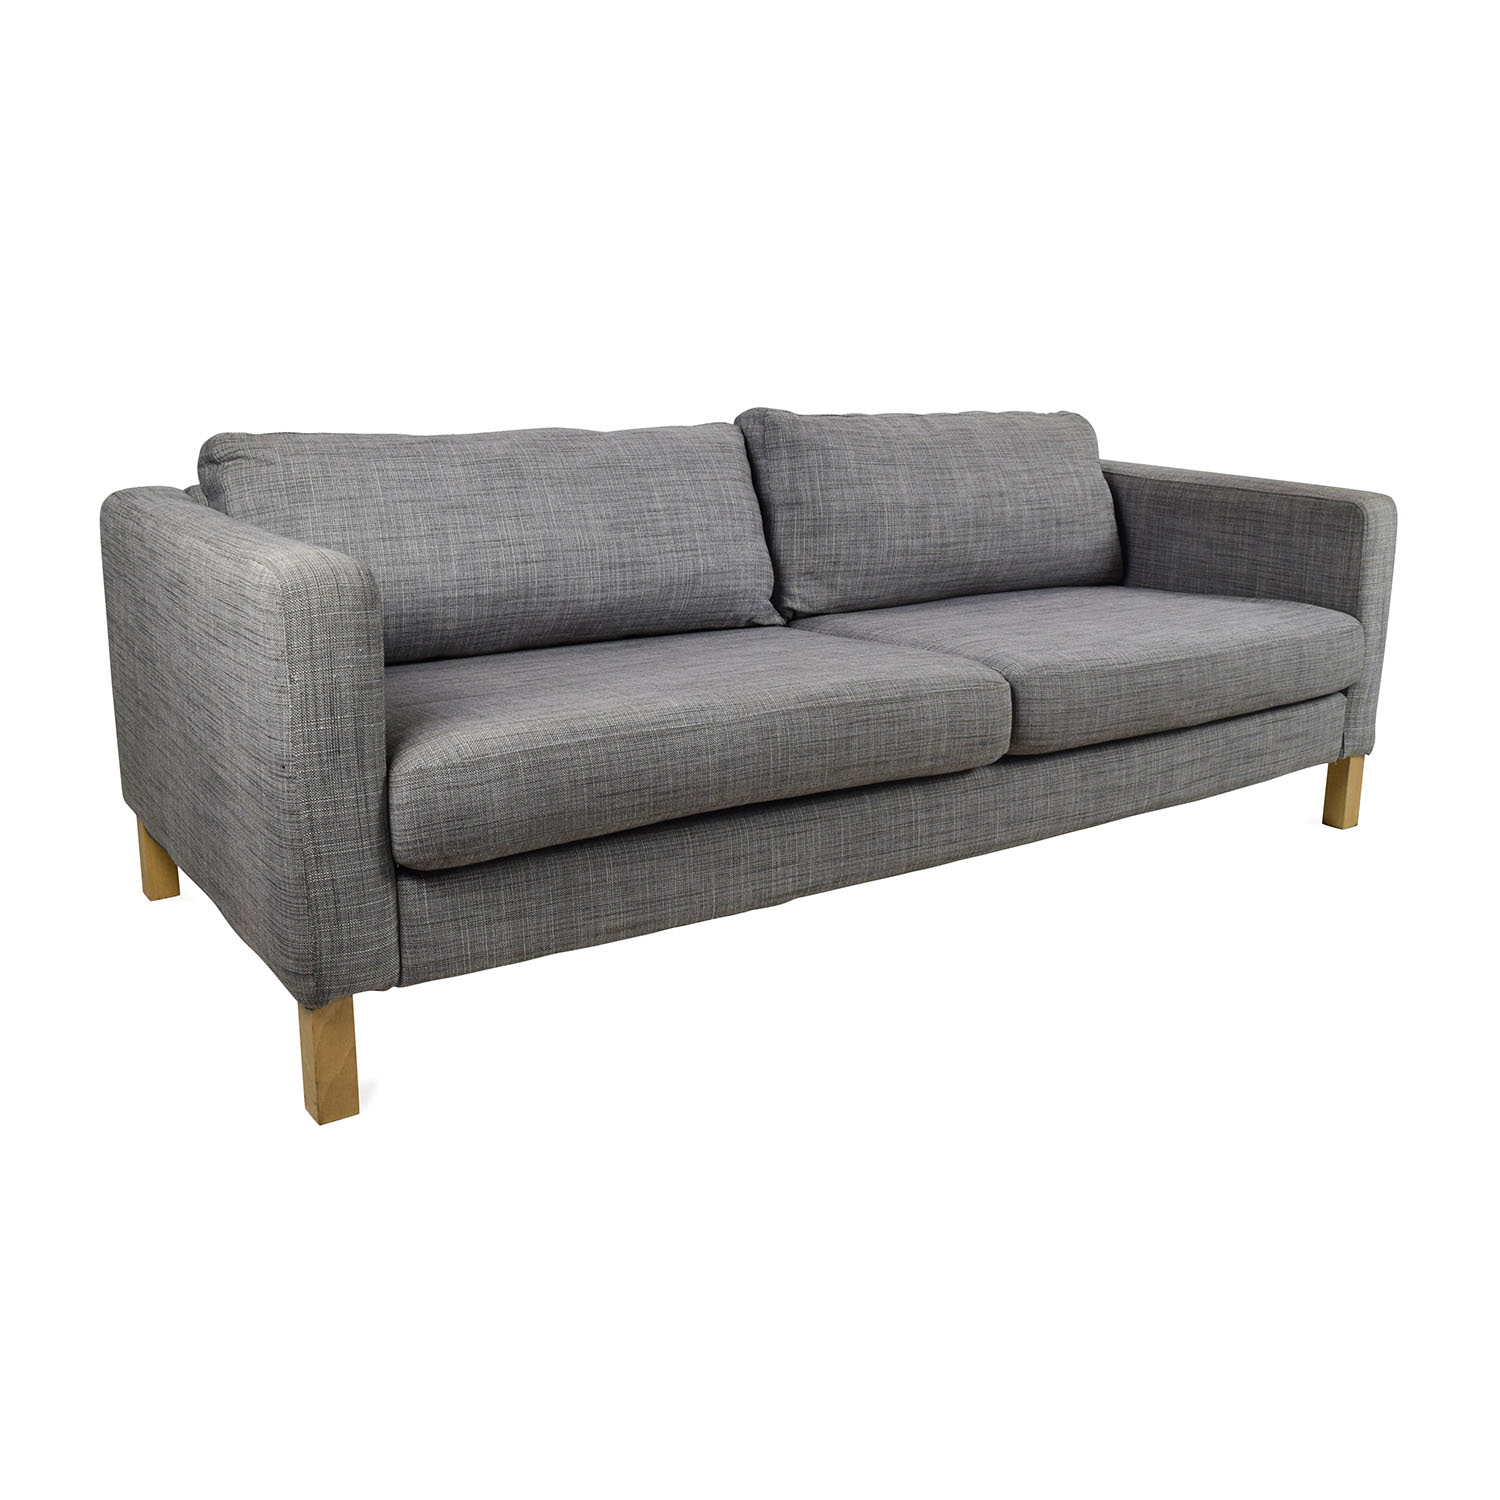 50 off ikea ikea karlstad sofa sofas rh kaiyo com Orange Sofa karlstad 3 seater sofa bed dimensions